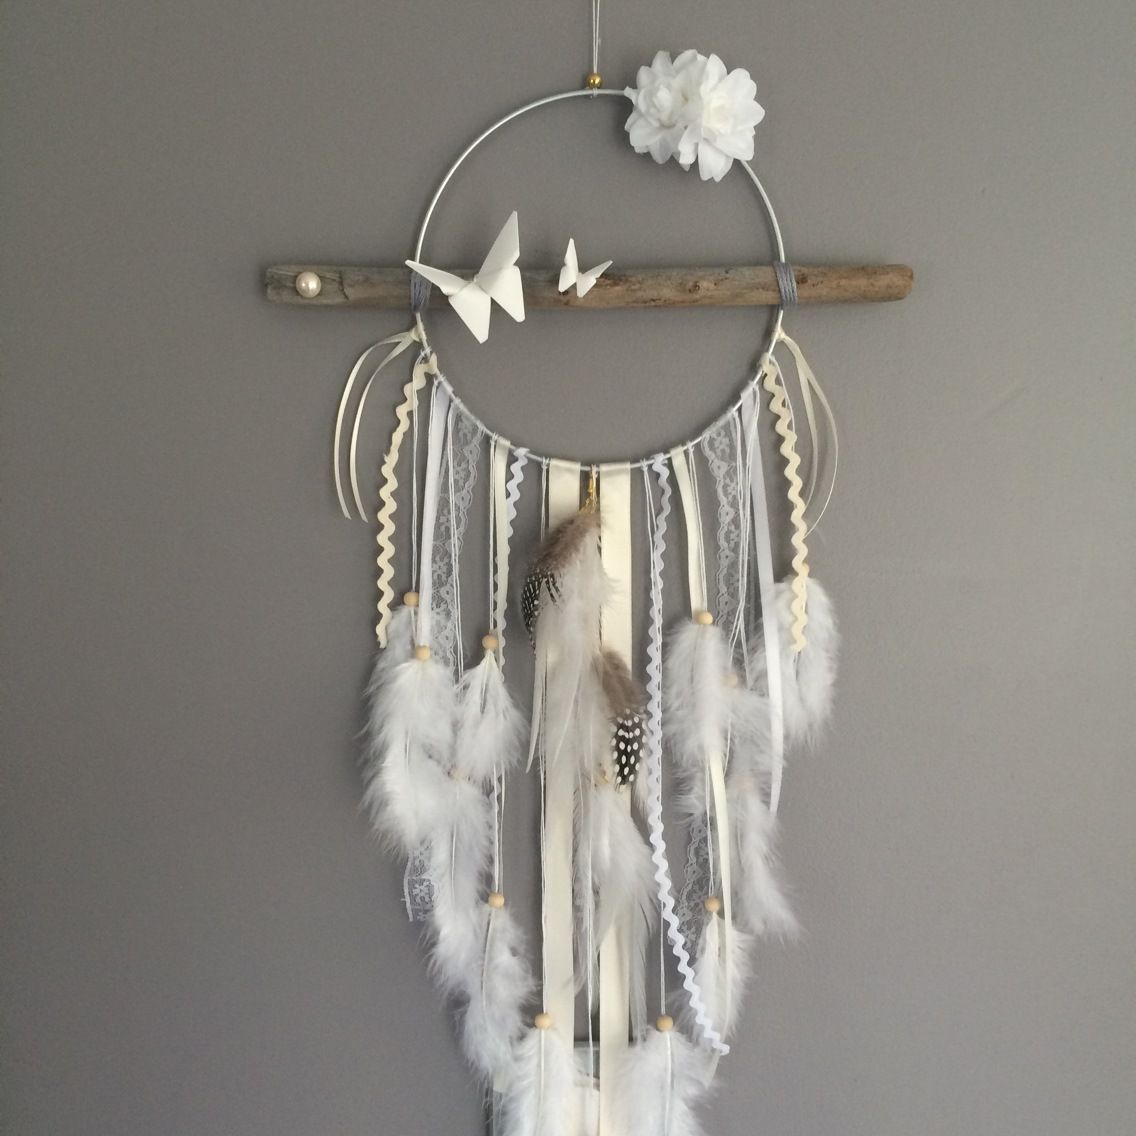 Attrape r ves dreamcatcher attrapeur de r ves en bois for Model decoration maison